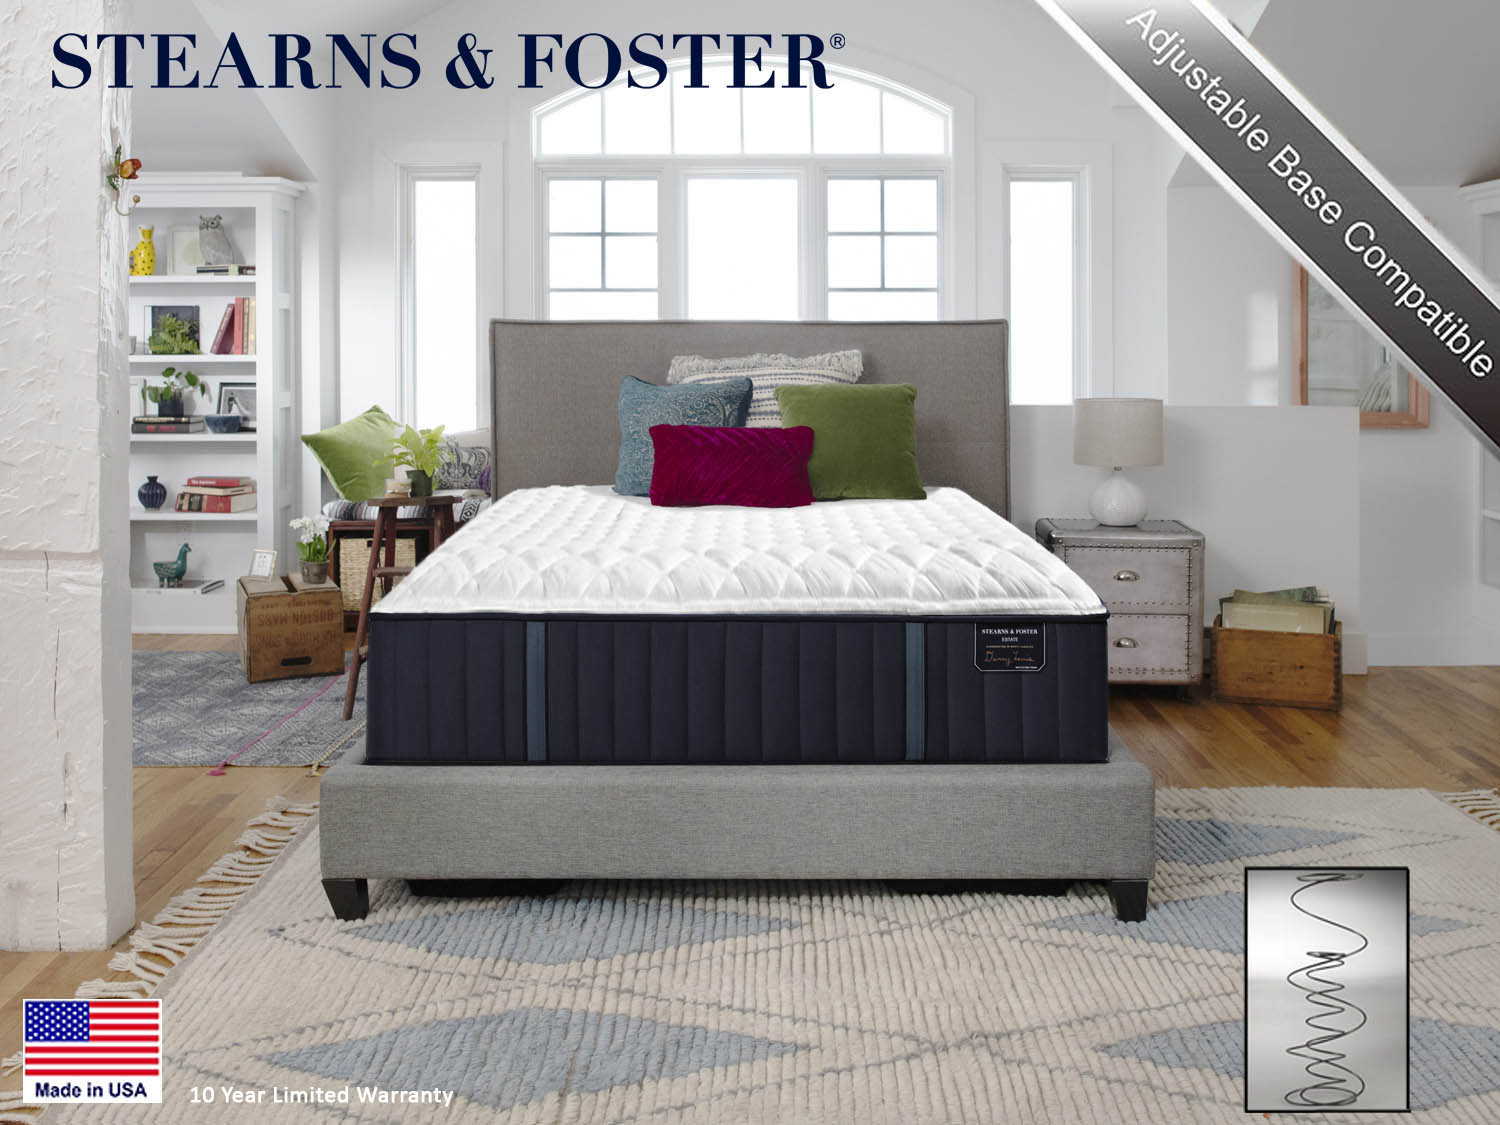 Stearns & Foster, Hurston FM, Firm, Estate, Mattress, Mattresses, Sealy, Barbo's Furniture